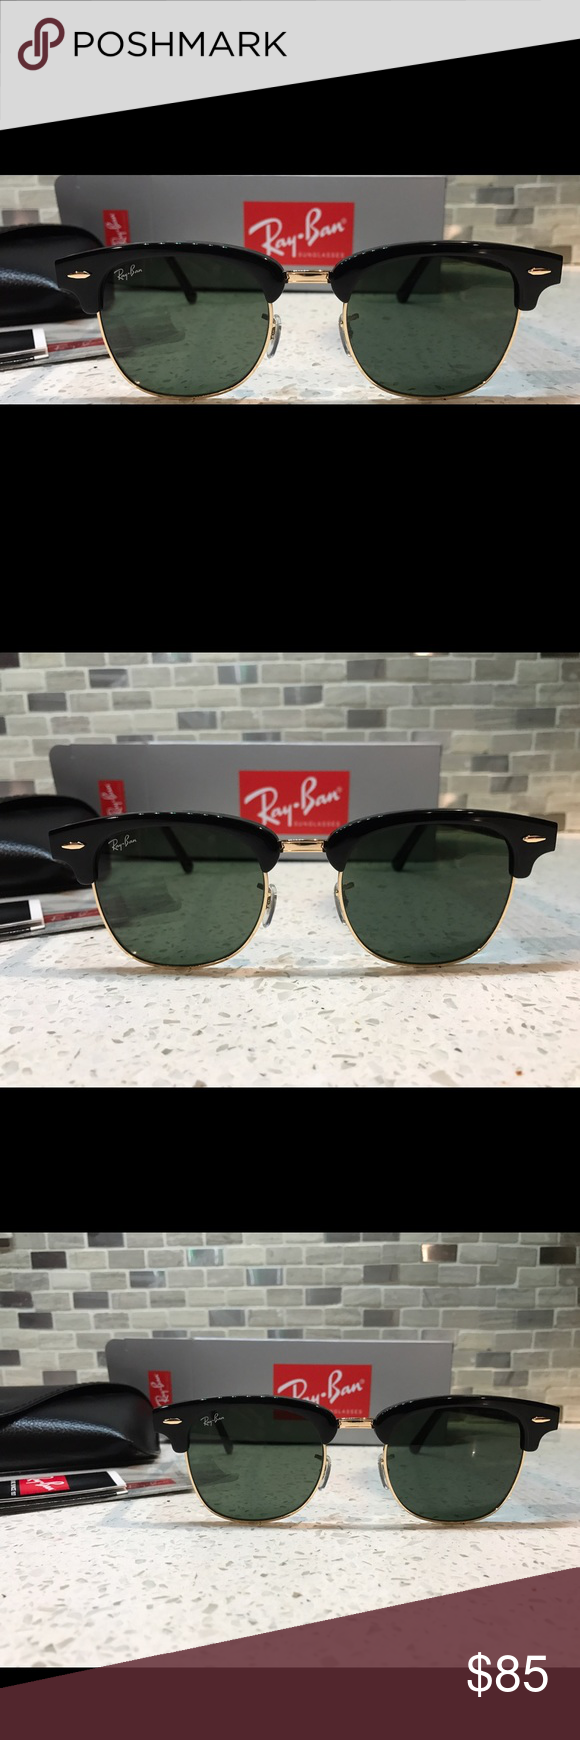 abcc4b0011cf4c Ray-Ban Clubmaster RB3016 W0365 51mm Black-Gold Frame Green Lens   100%  Authentic and brand new! Glasses are unisex. Comes with case. Ray-Ban  Accessories ...